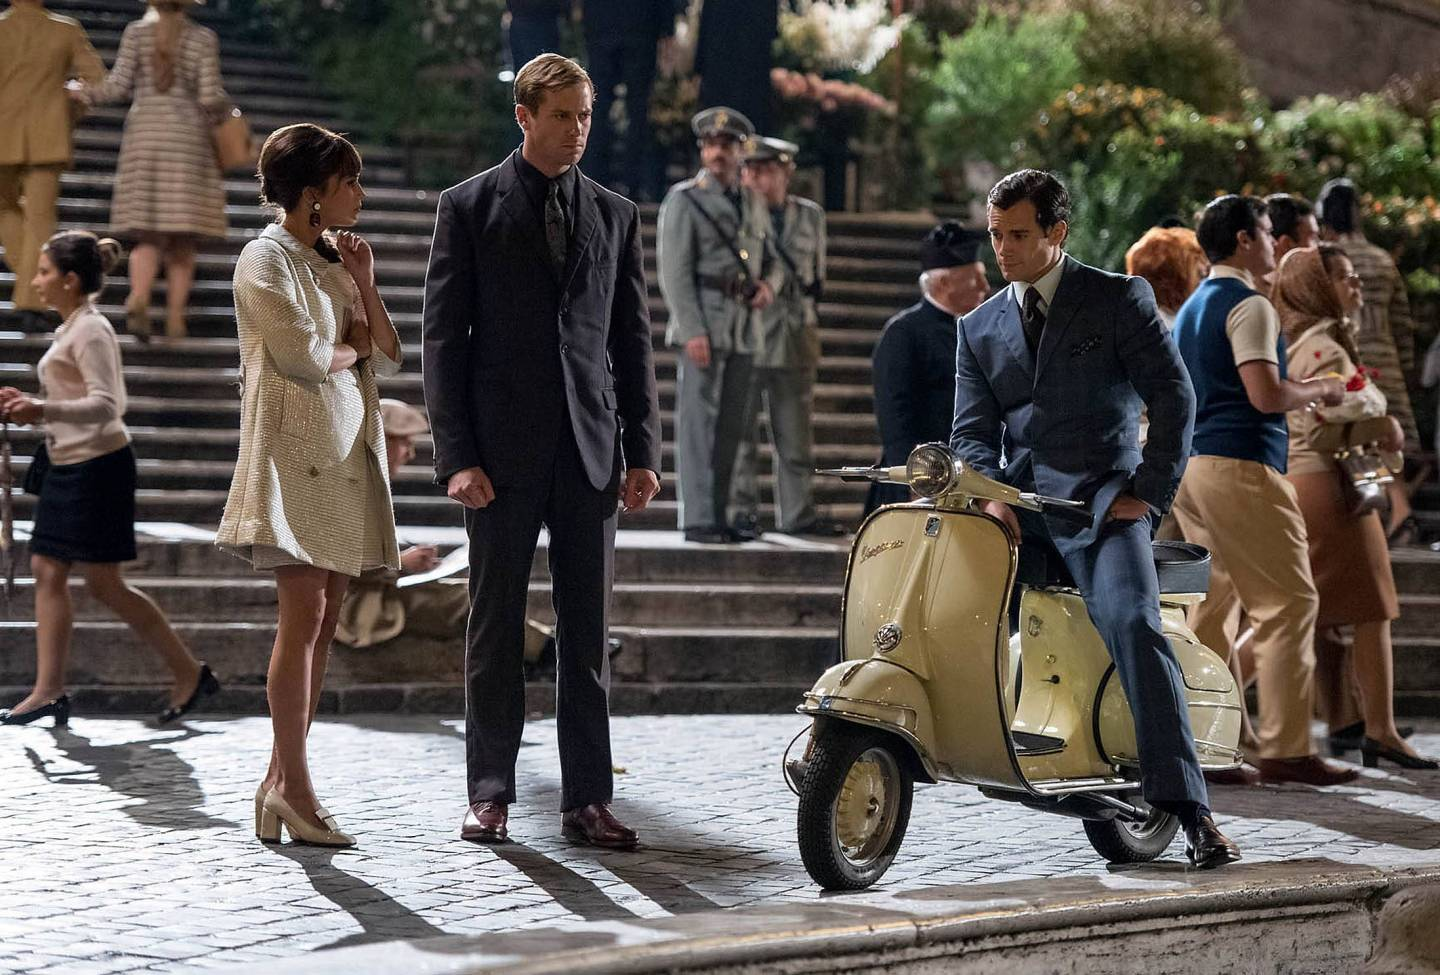 Napoleon Solo astride a fashionable sixties scooter in The Man From U.N.C.L.E.